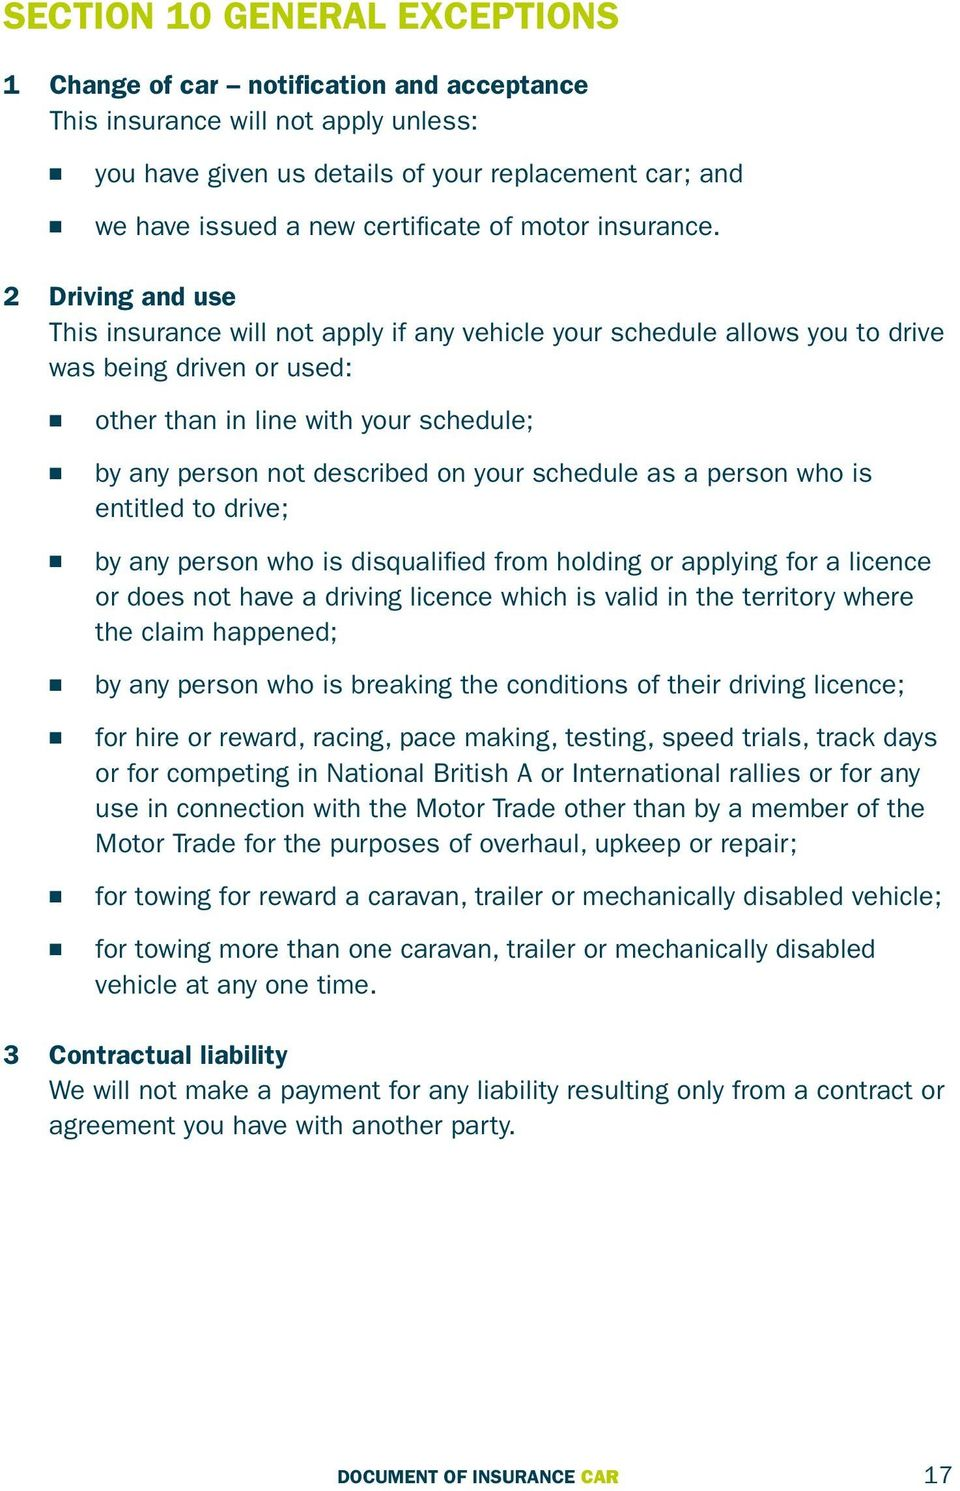 2 Drivig ad use This isurace will ot apply if ay vehicle your schedule allows you to drive was beig drive or used: other tha i lie with your schedule; by ay perso ot described o your schedule as a